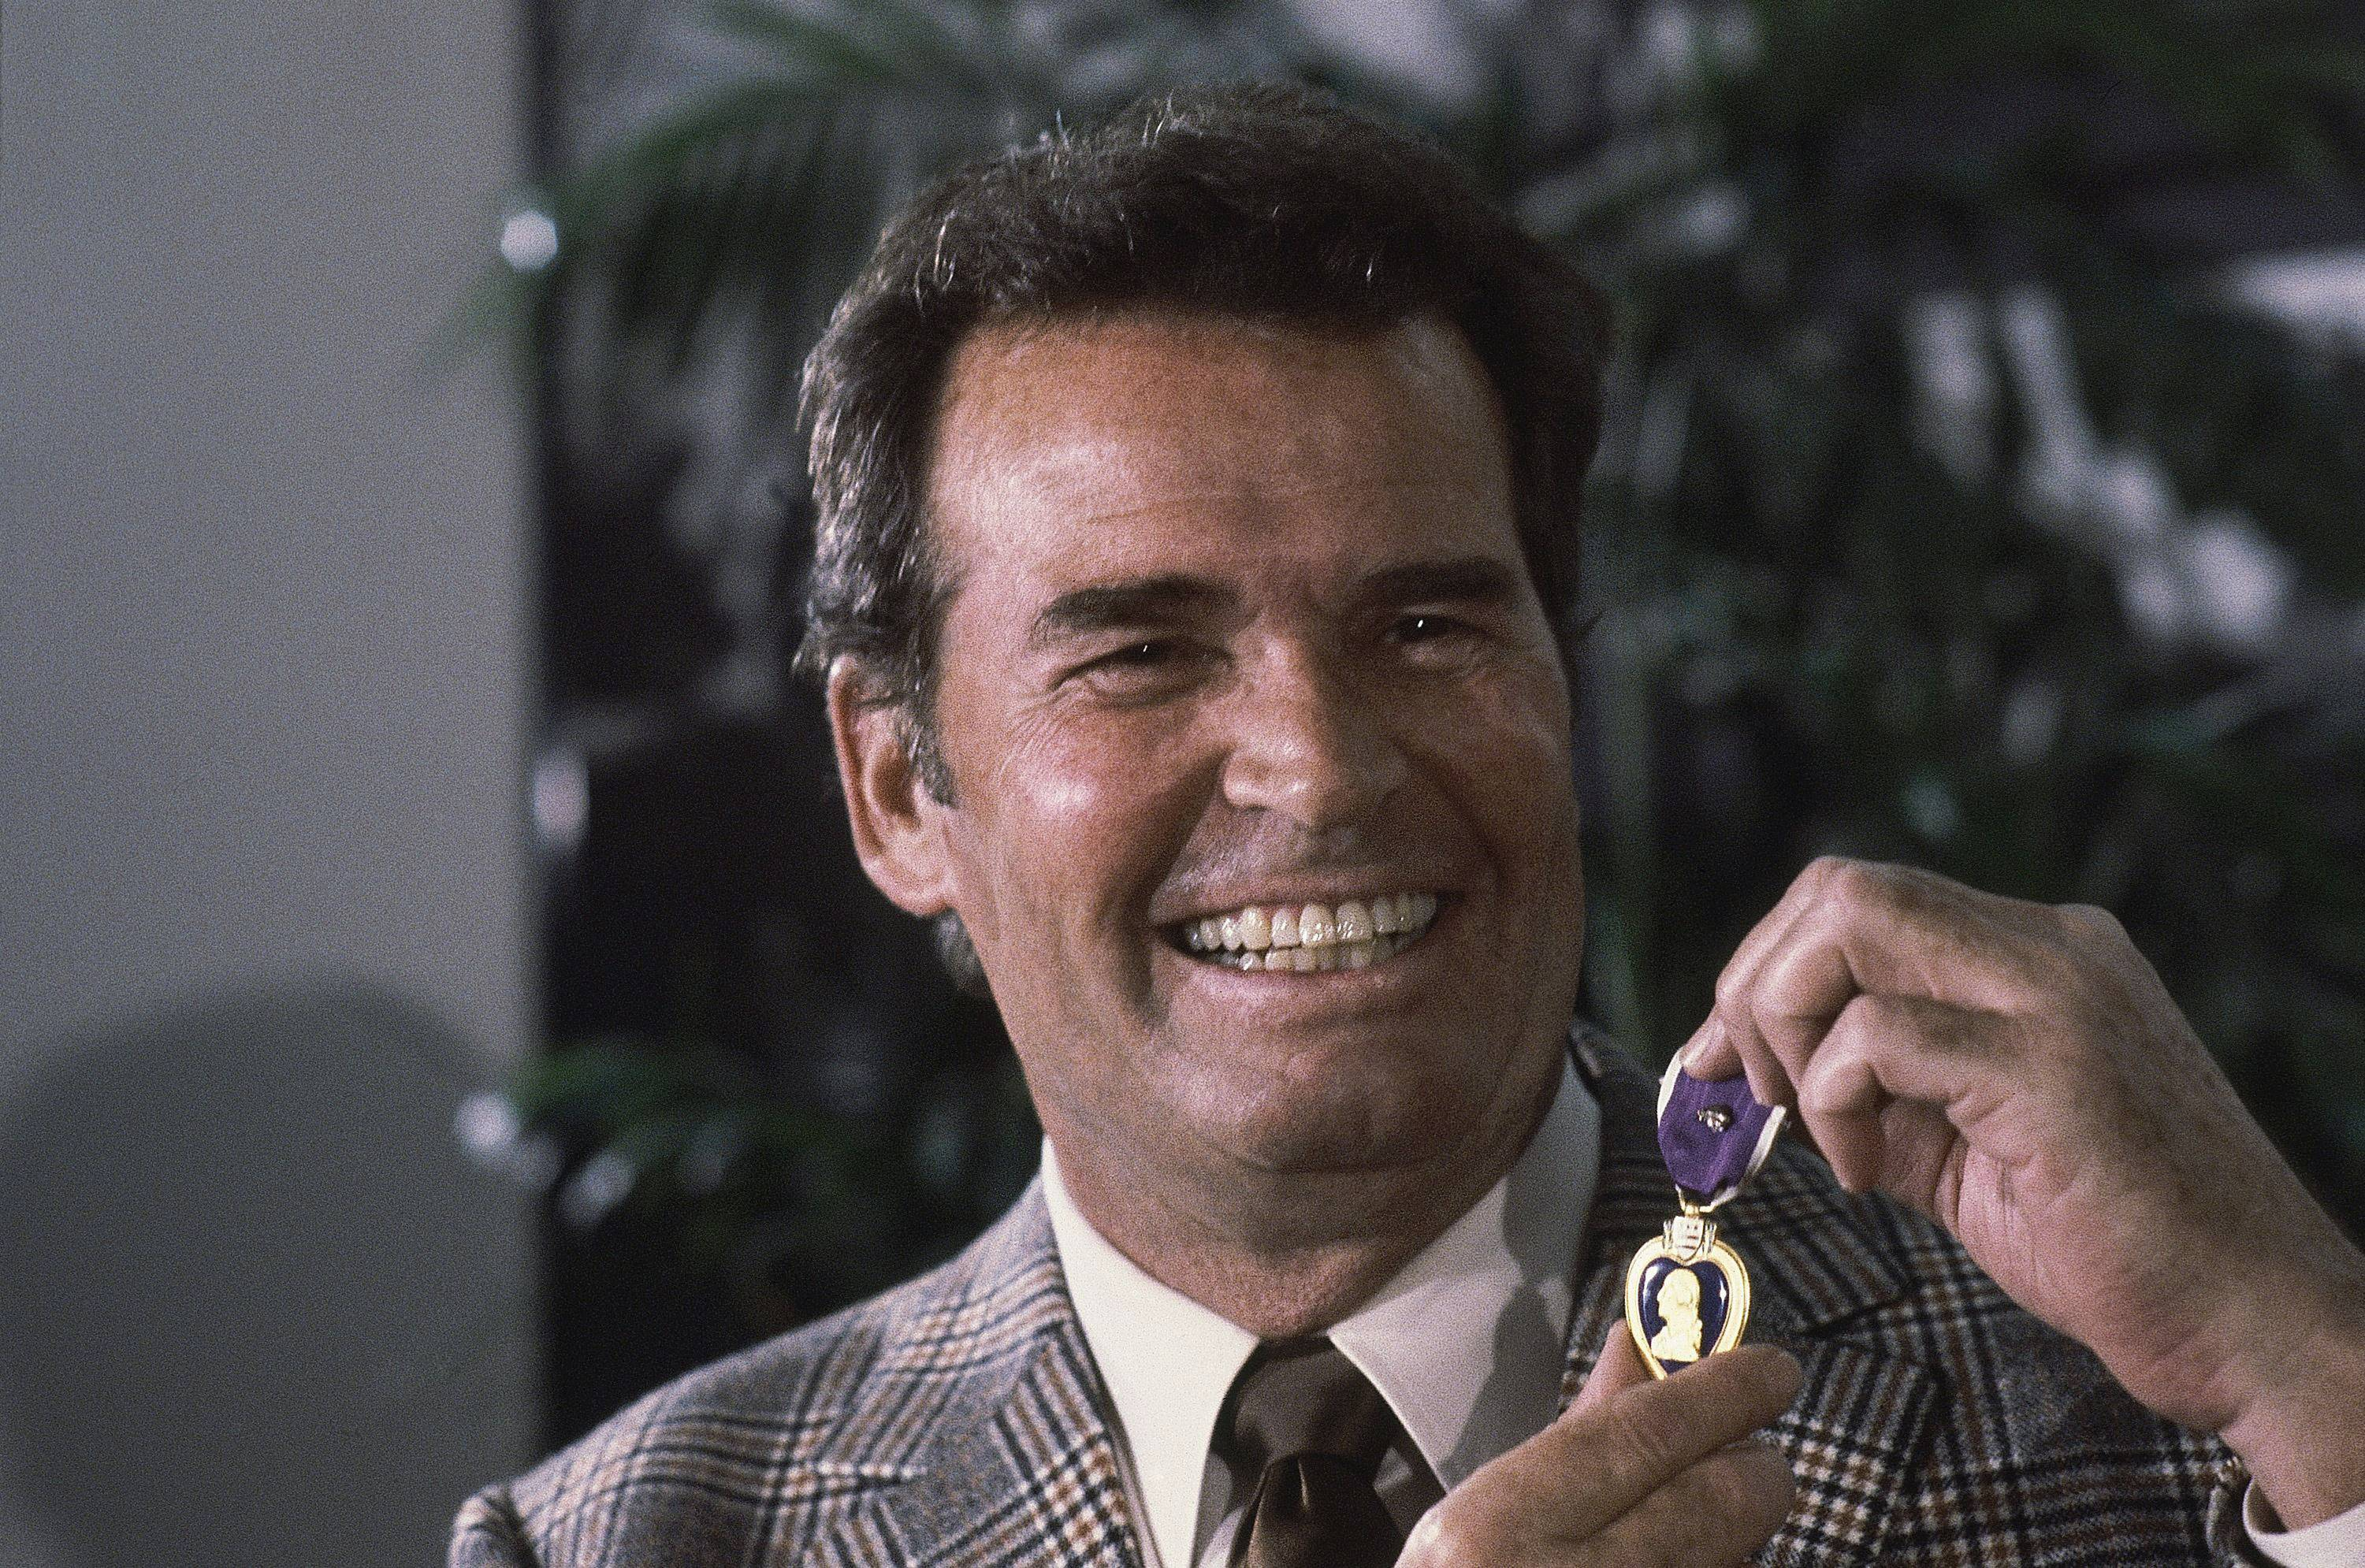 "Actor James Garner, left, smiles as he holds up the Purple Heart medal presented to him in a ceremony in this Monday, Jan. 24, 1983 file photo taken Los Angeles, Calif. Garner was wounded in April 1951 while with U.S. Forces in Korea, but his medal was never presented to him. Actor James Garner, wisecracking star of TV's ""Maverick"" who went on to a long career on both small and big screen, died Saturday July 19, 2014 according to Los angeles police. He was 86."